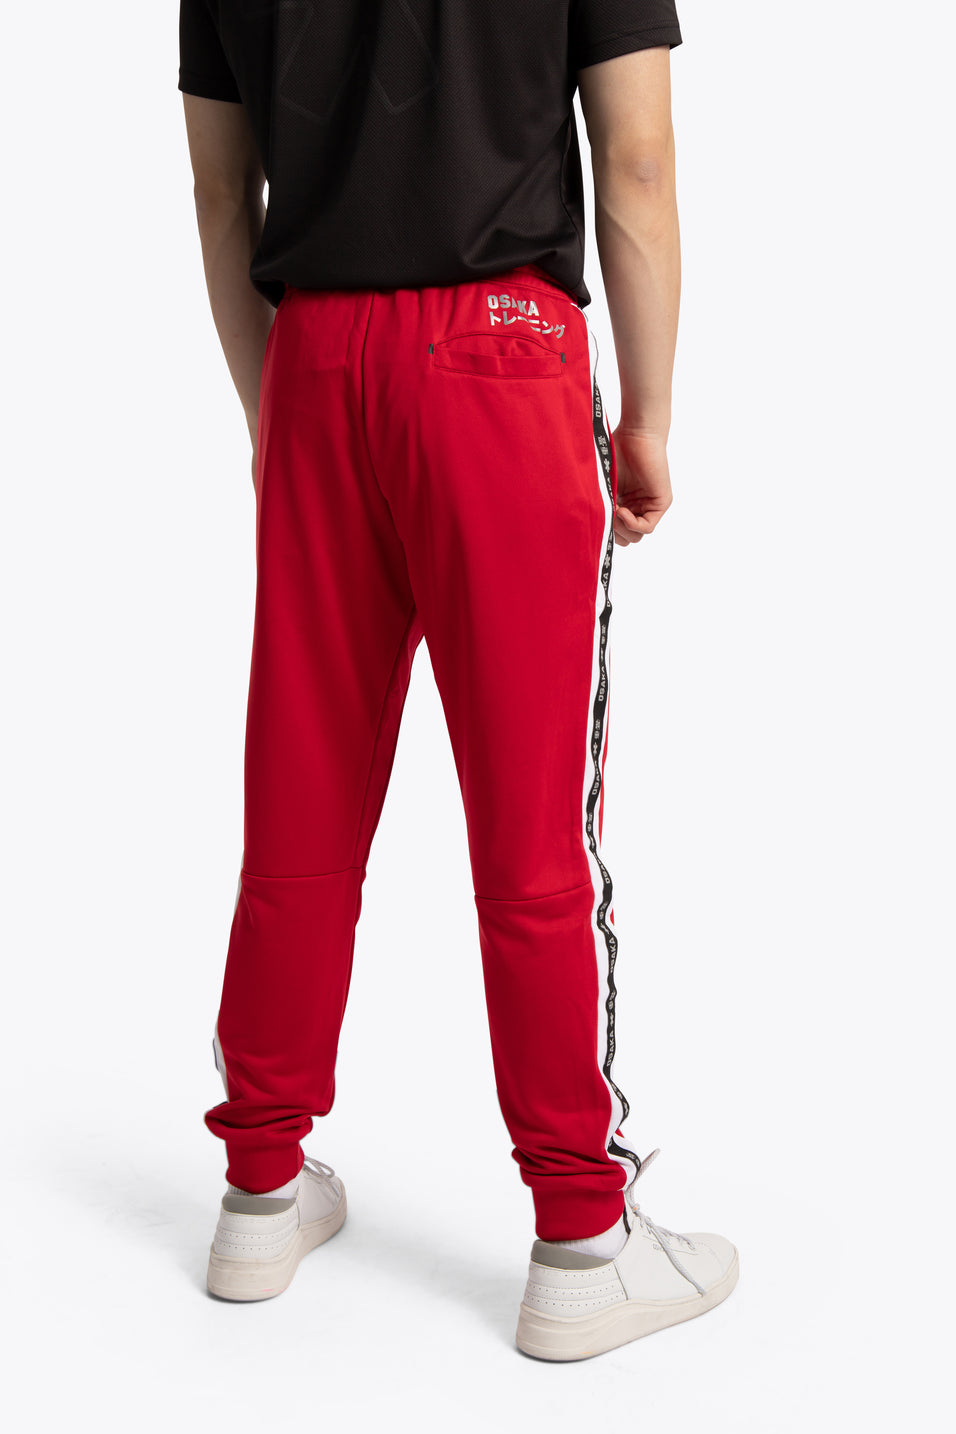 Osakaworld training sweatpants red